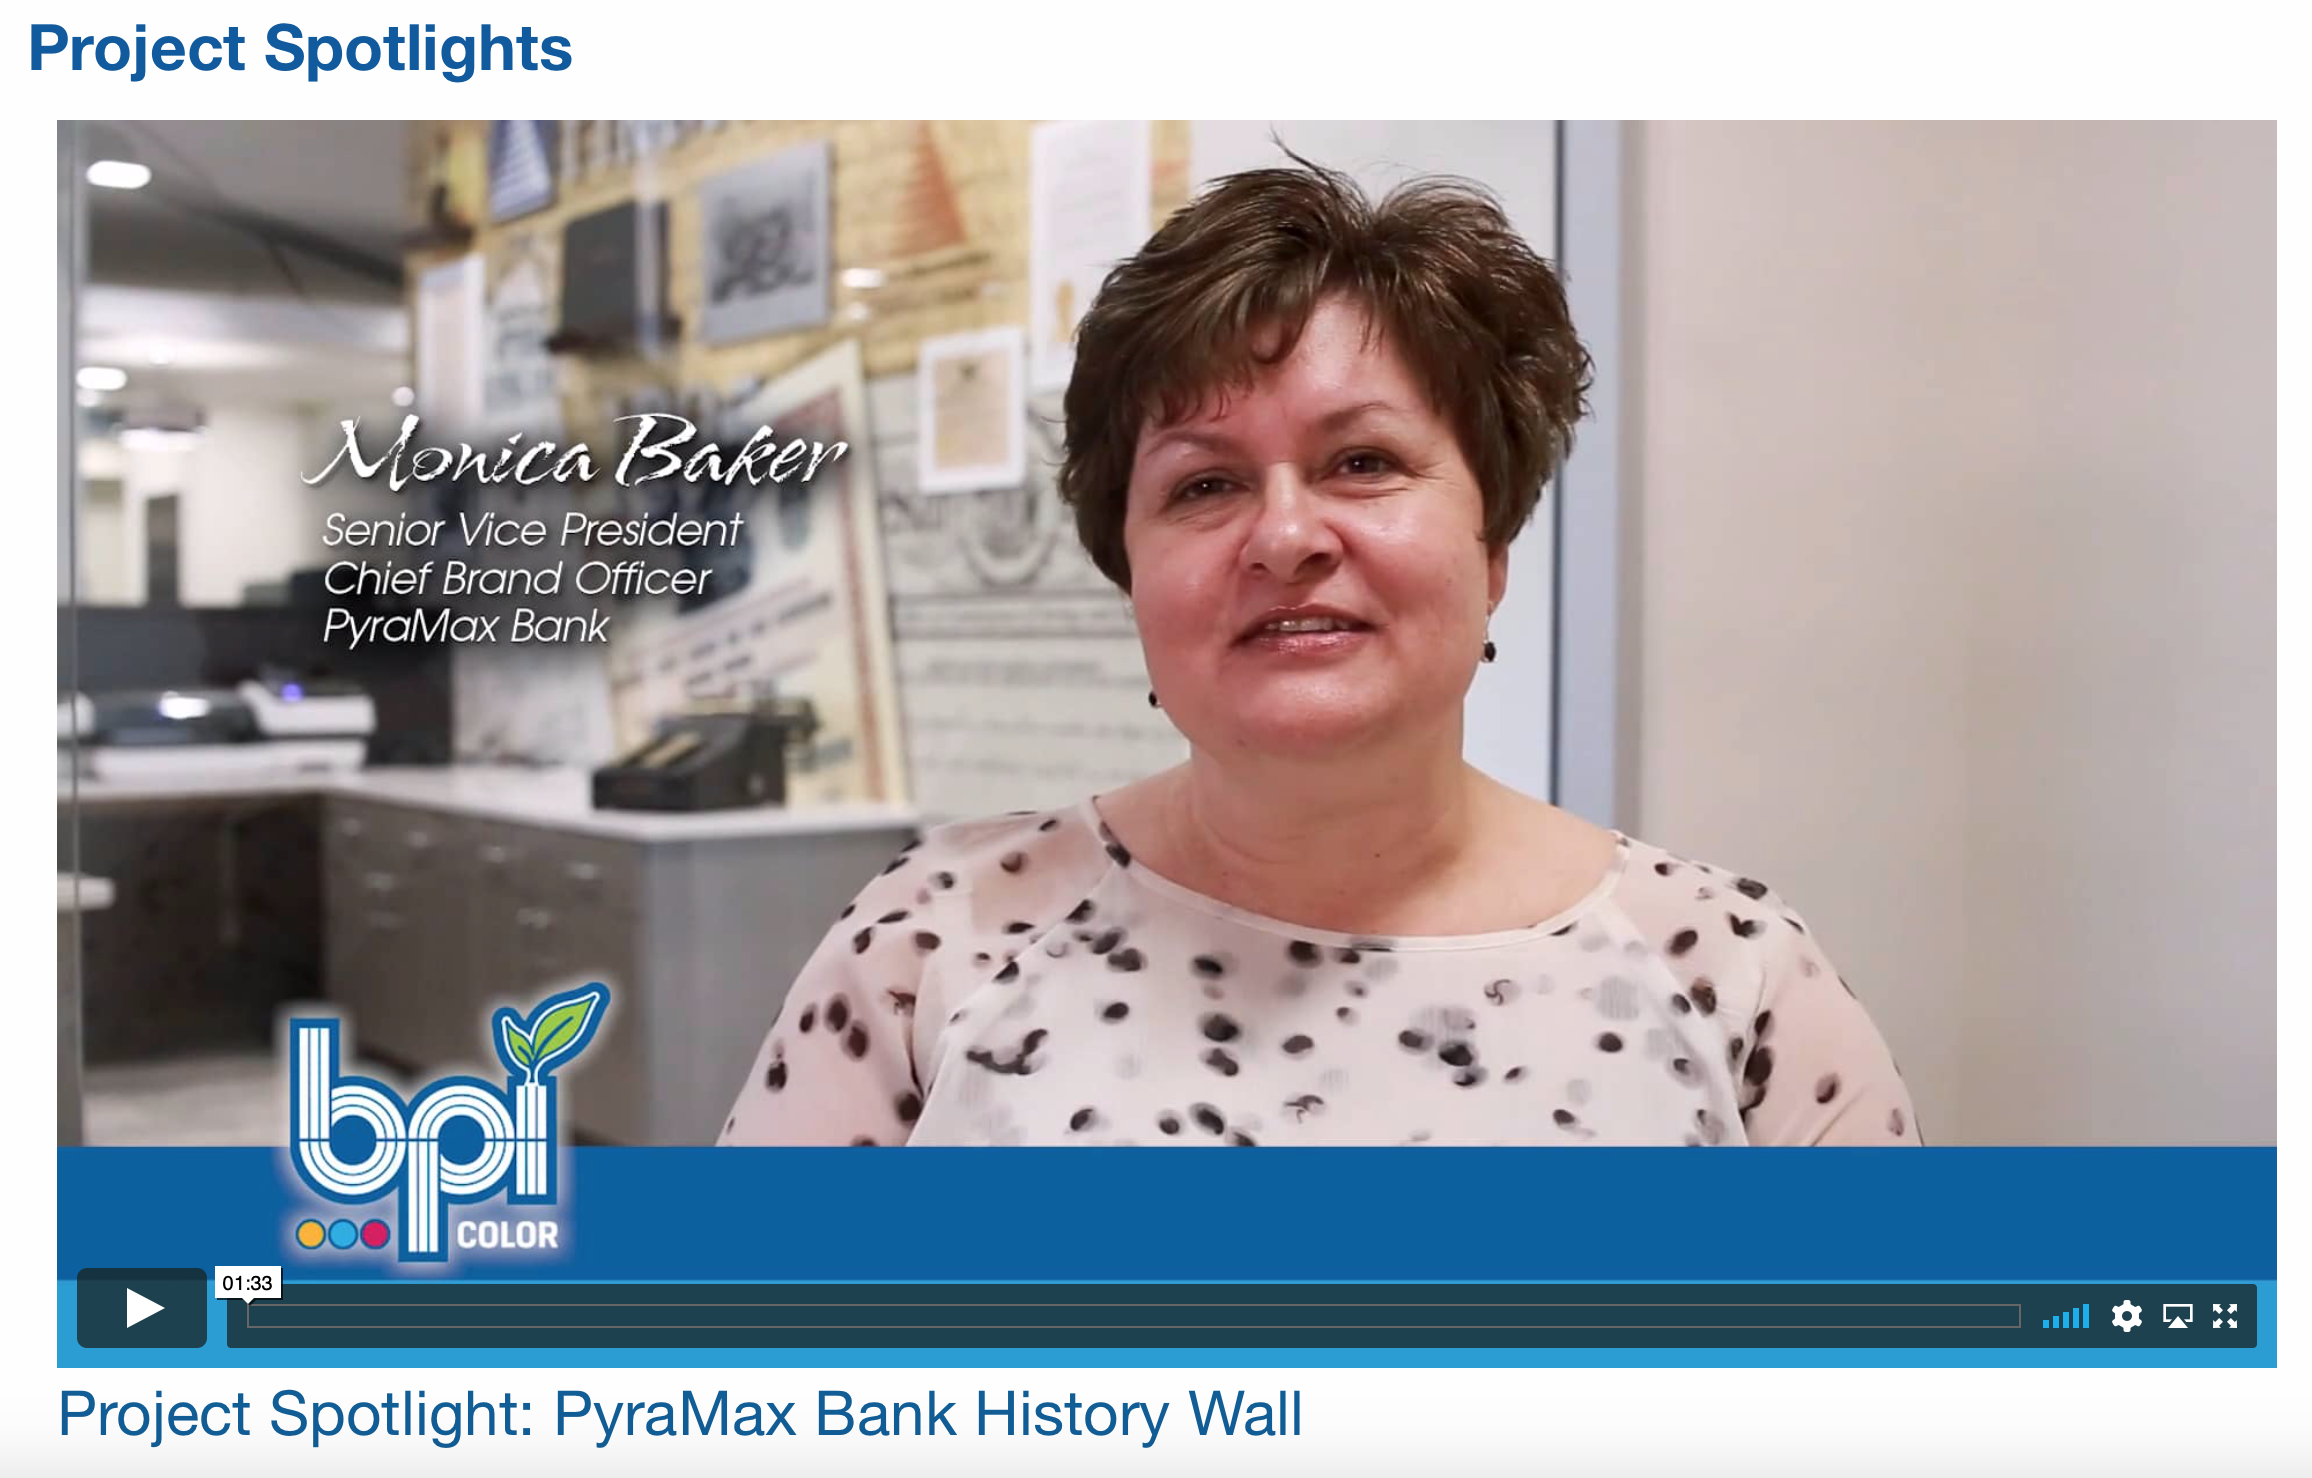 Hear what Monica Baker has to say about her experience with BPI Color